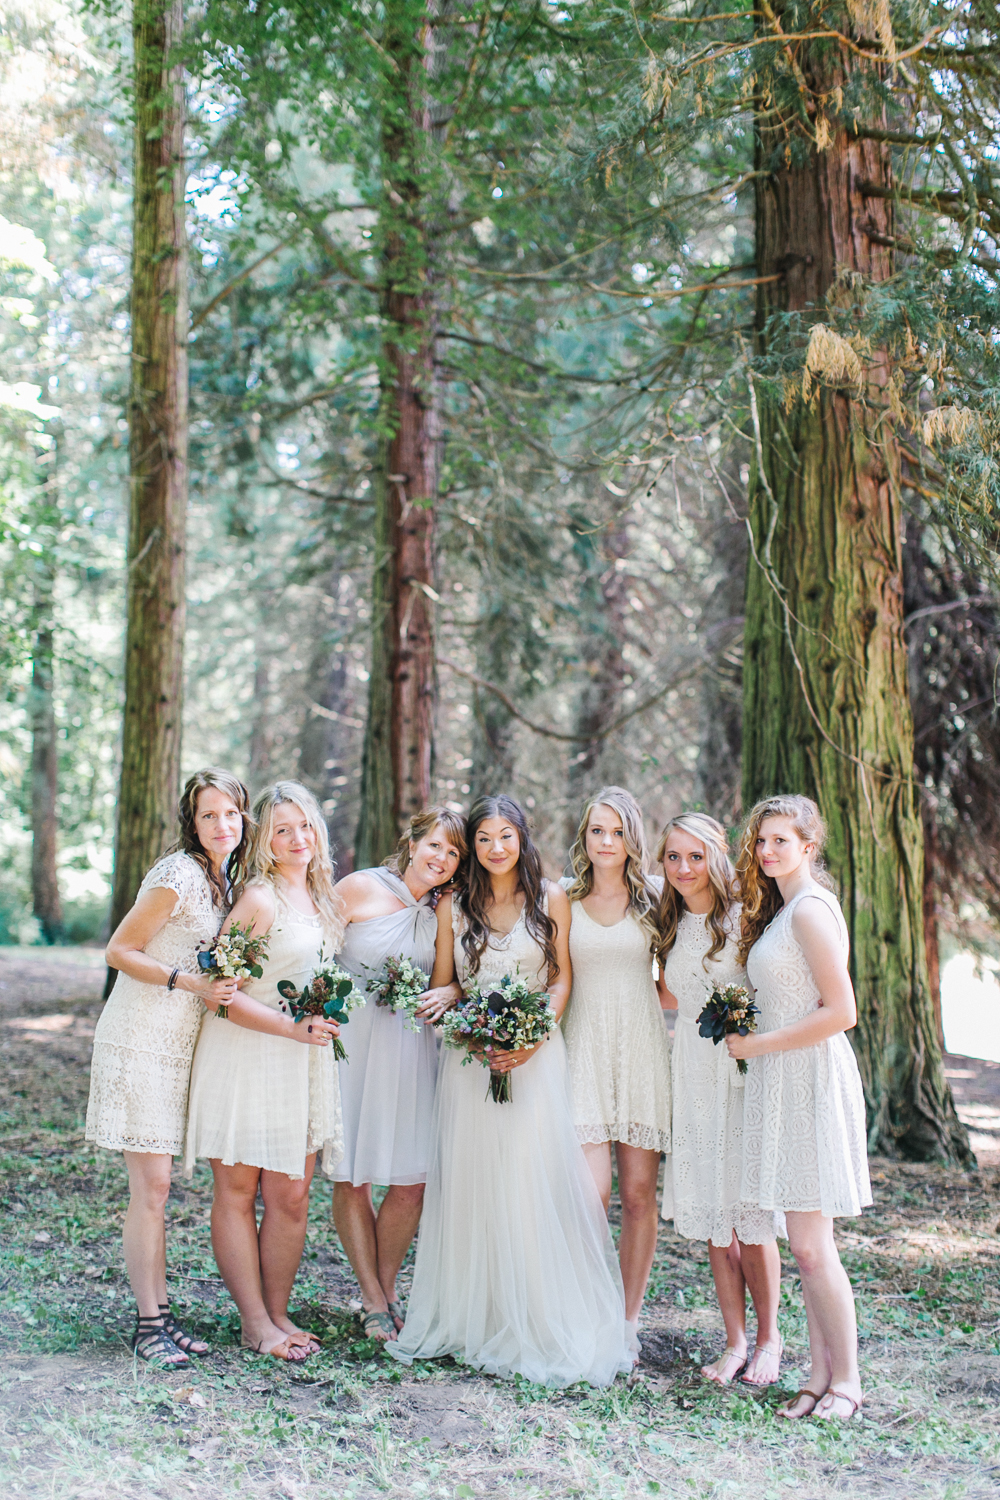 Bridesmaids - Rustic Oregon Summer Wedding from Maria Lamb Photography - marialamb.co